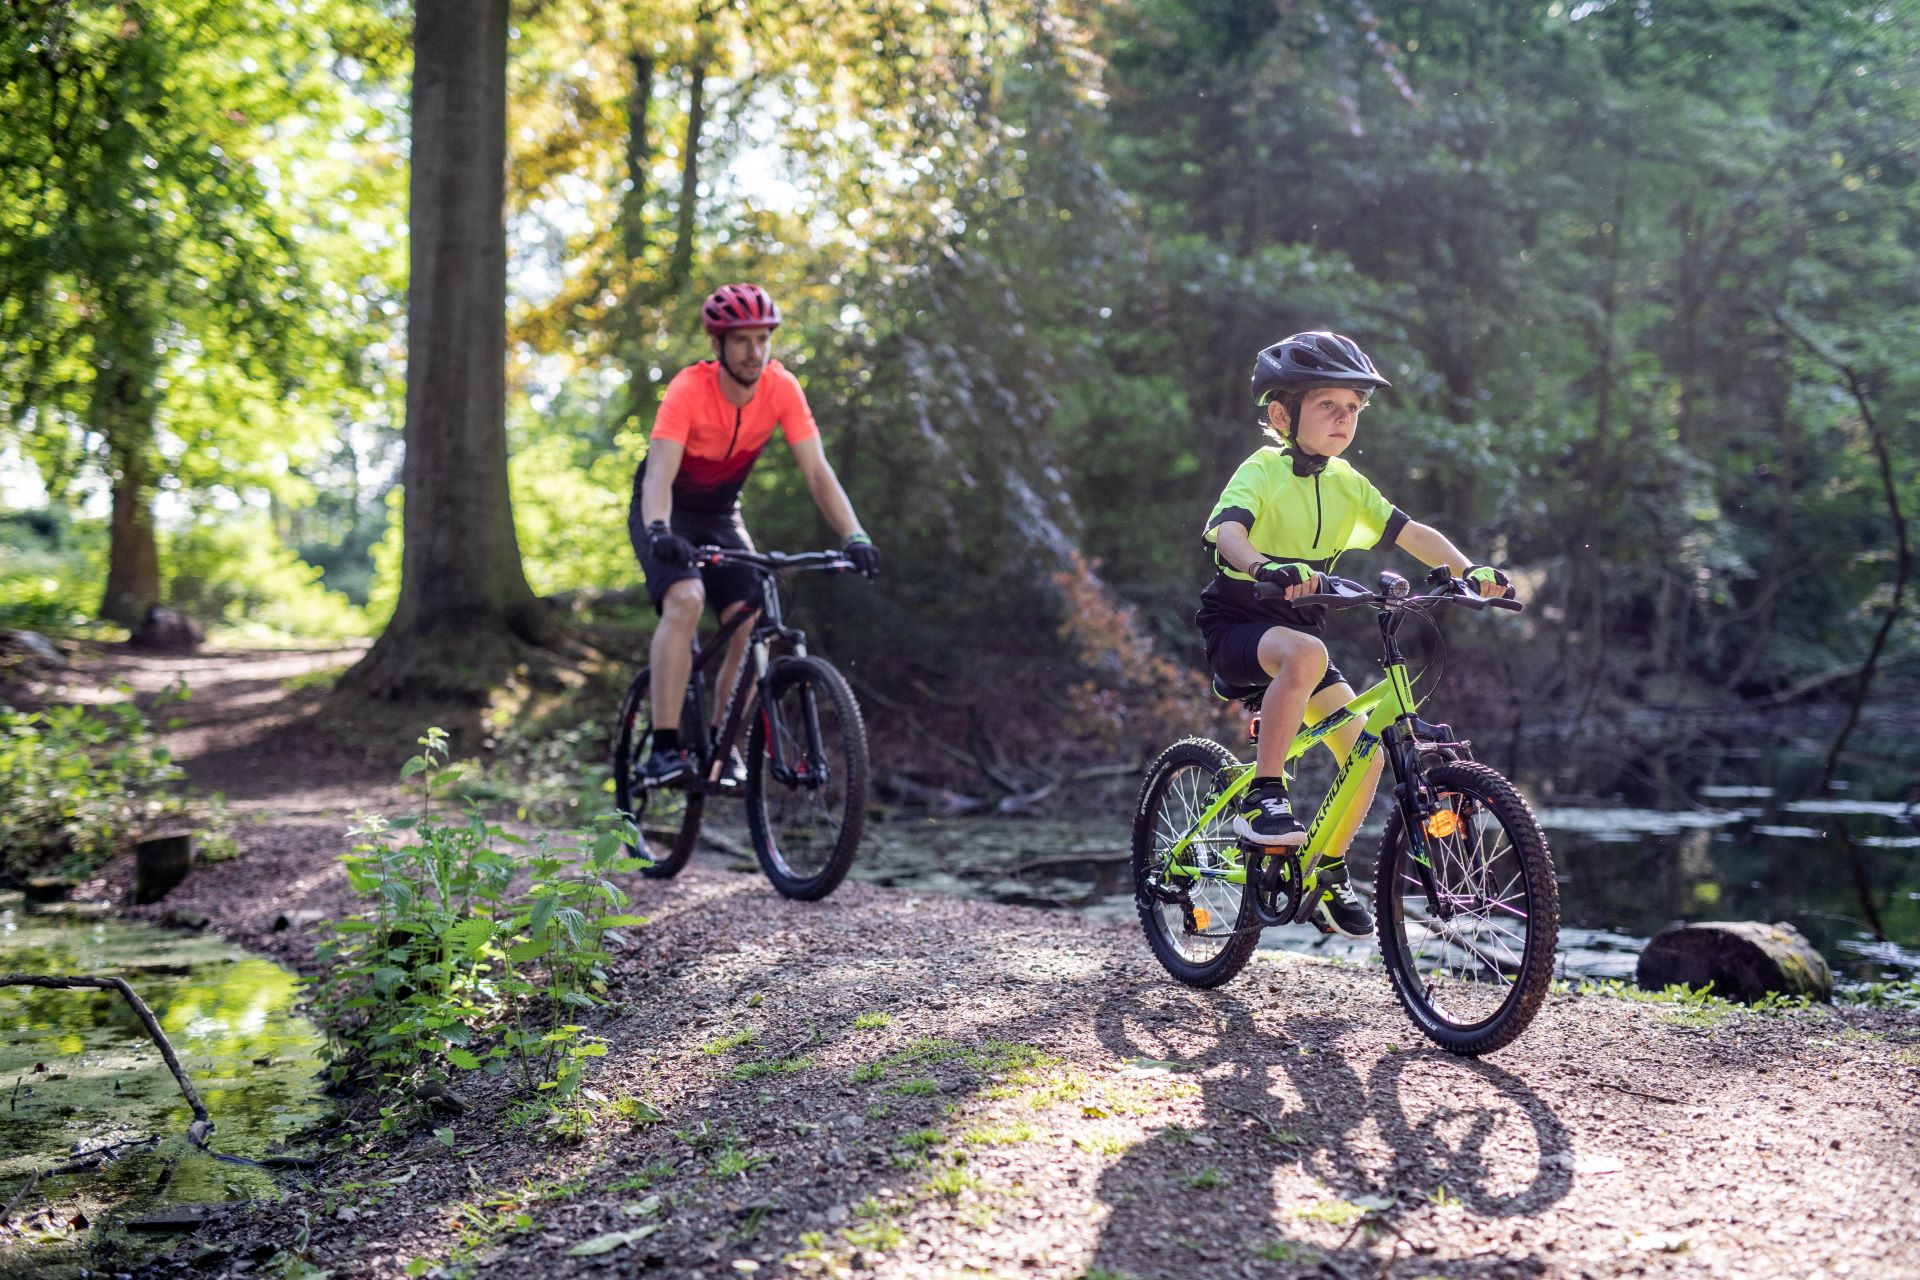 The Top 10 British Forests For Family Cycling